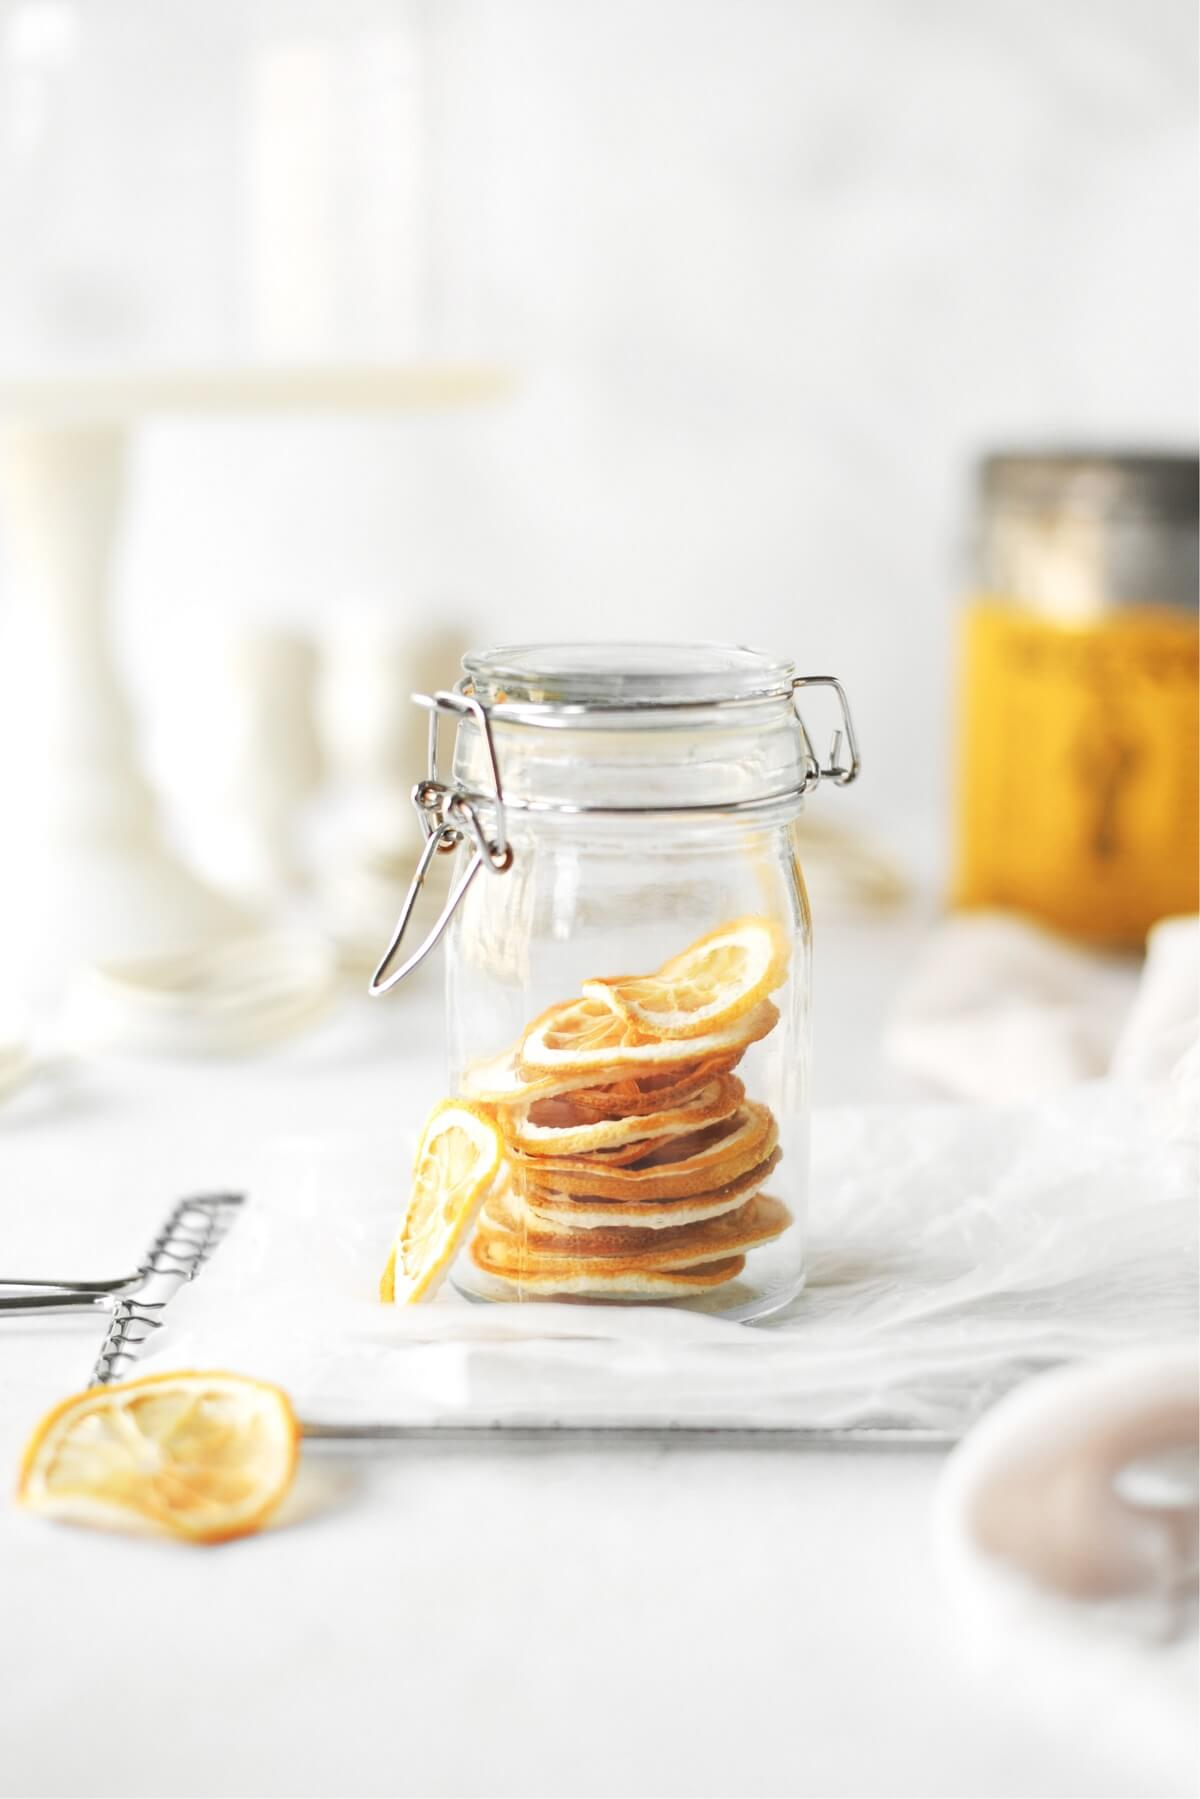 Dried lemon slices in a glass jar.